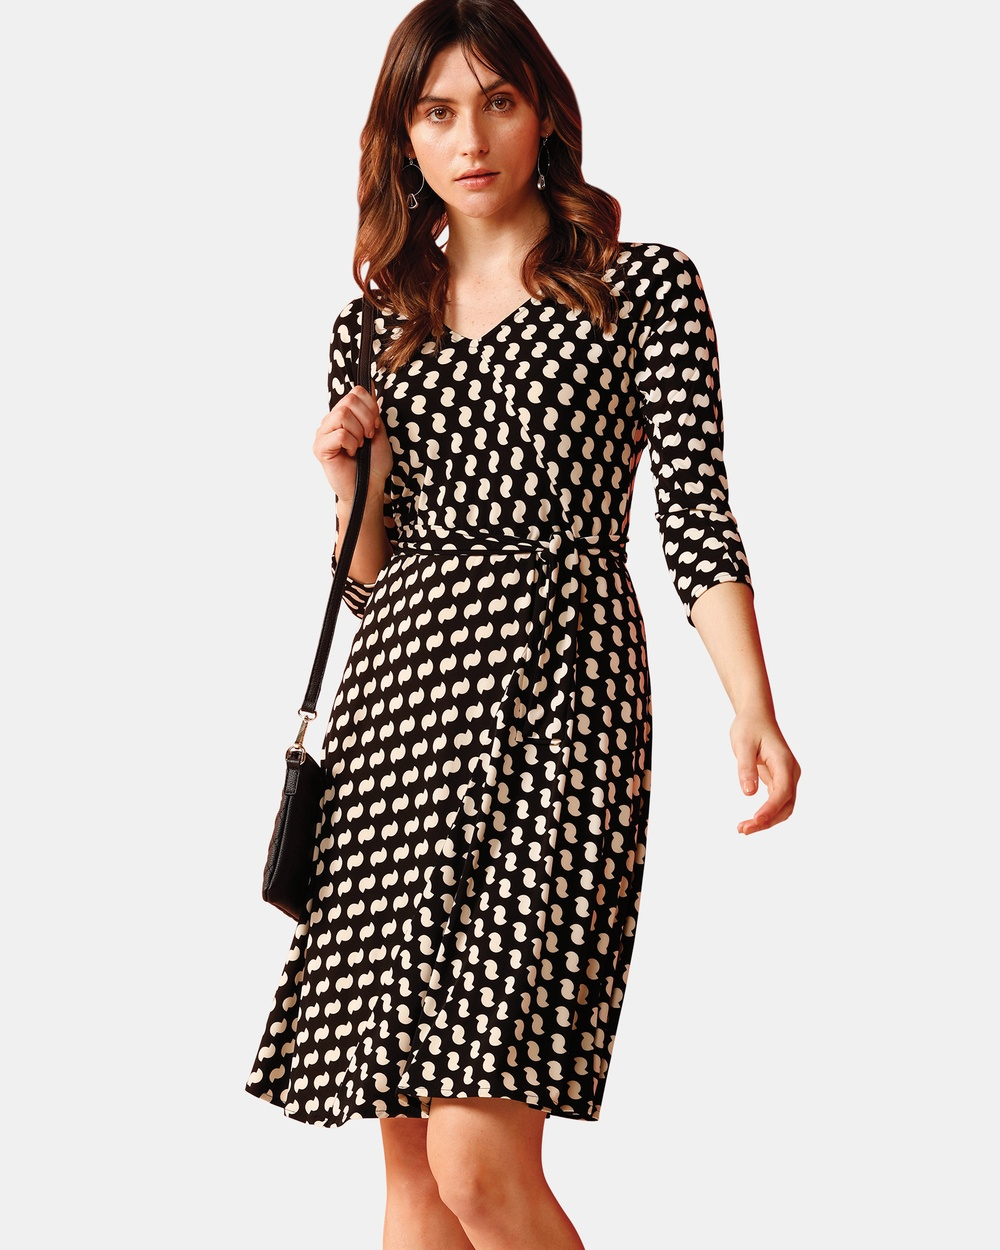 SACHA DRAKE Black Harlem Meer Dress